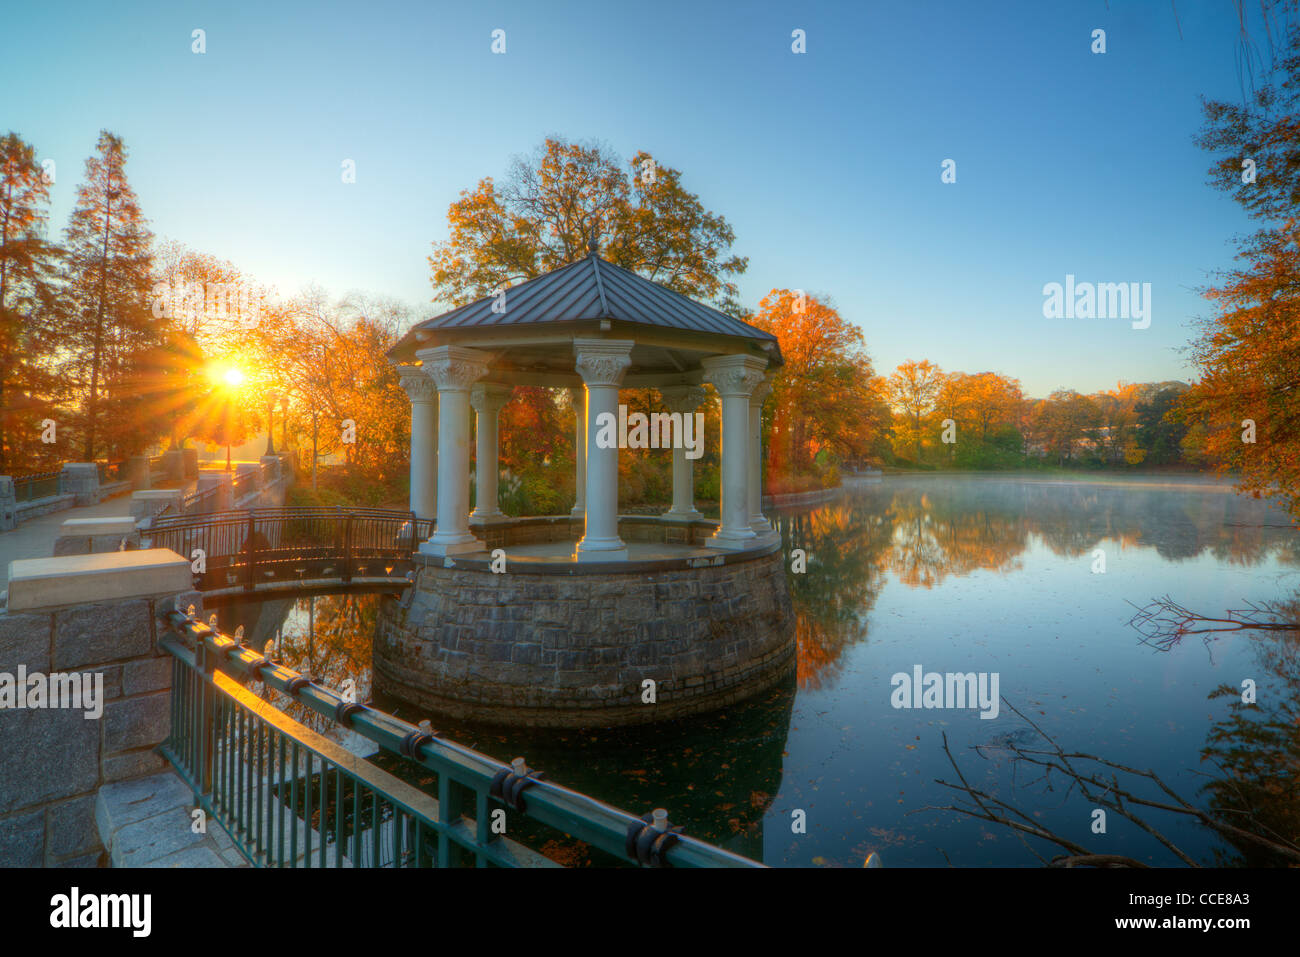 Pavilion at lake Meer in Piedmont Park in Atlanta, Georgia. - Stock Image